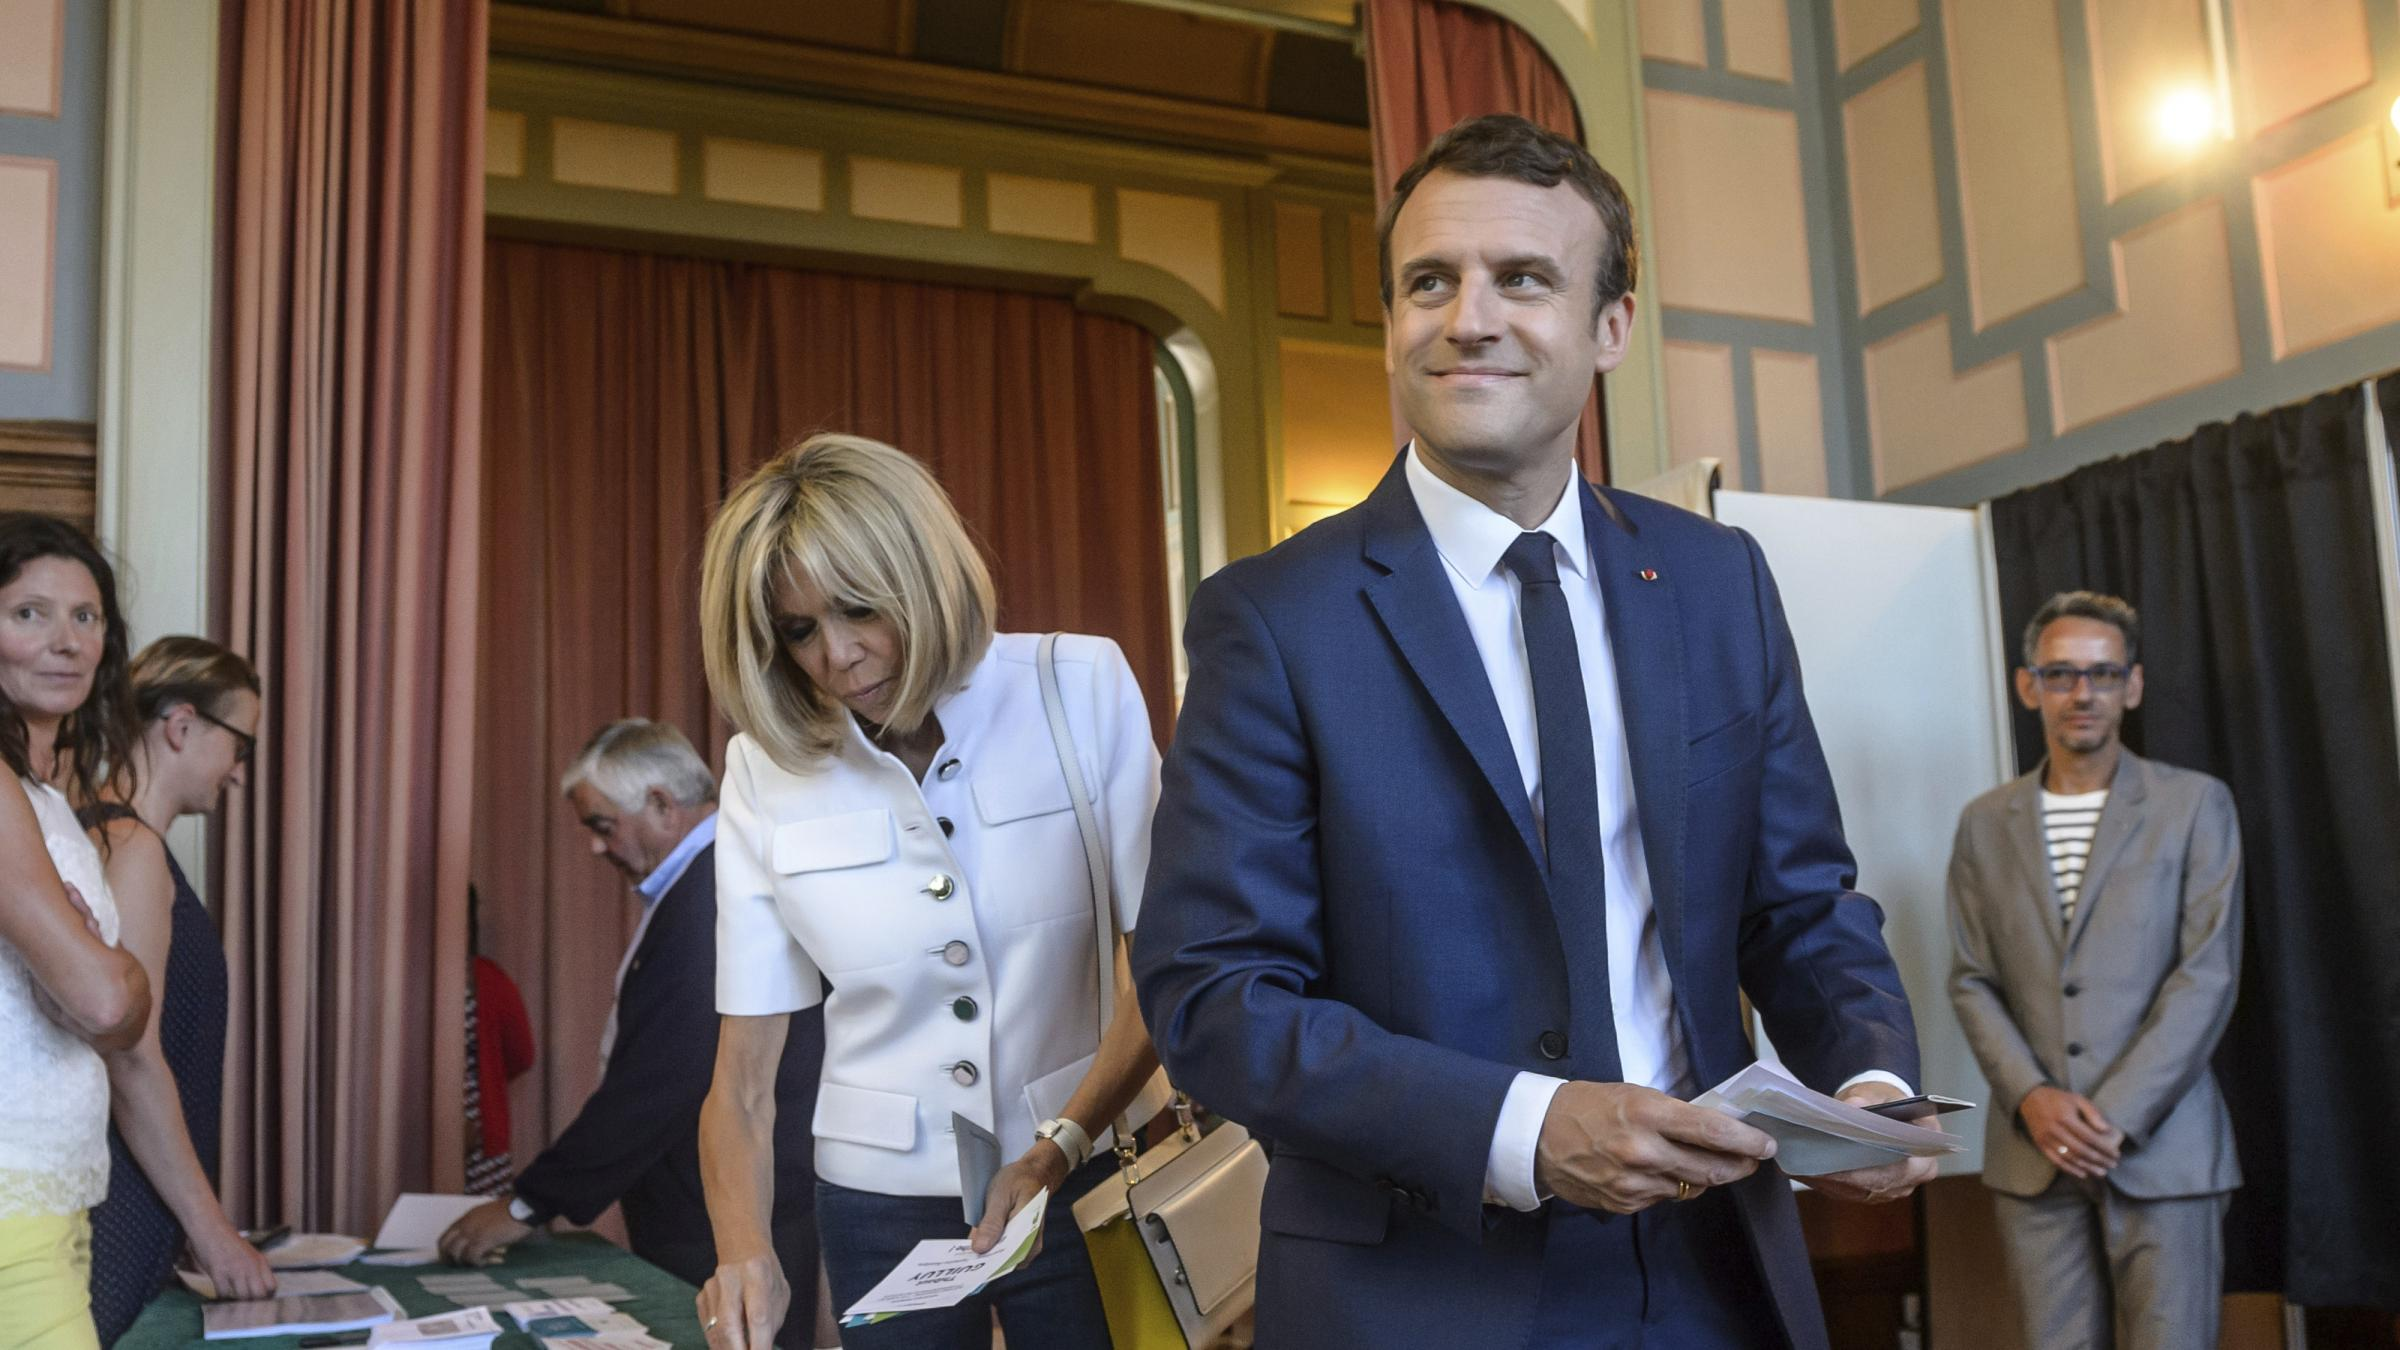 Macron's party set for decisive majority in French parliament